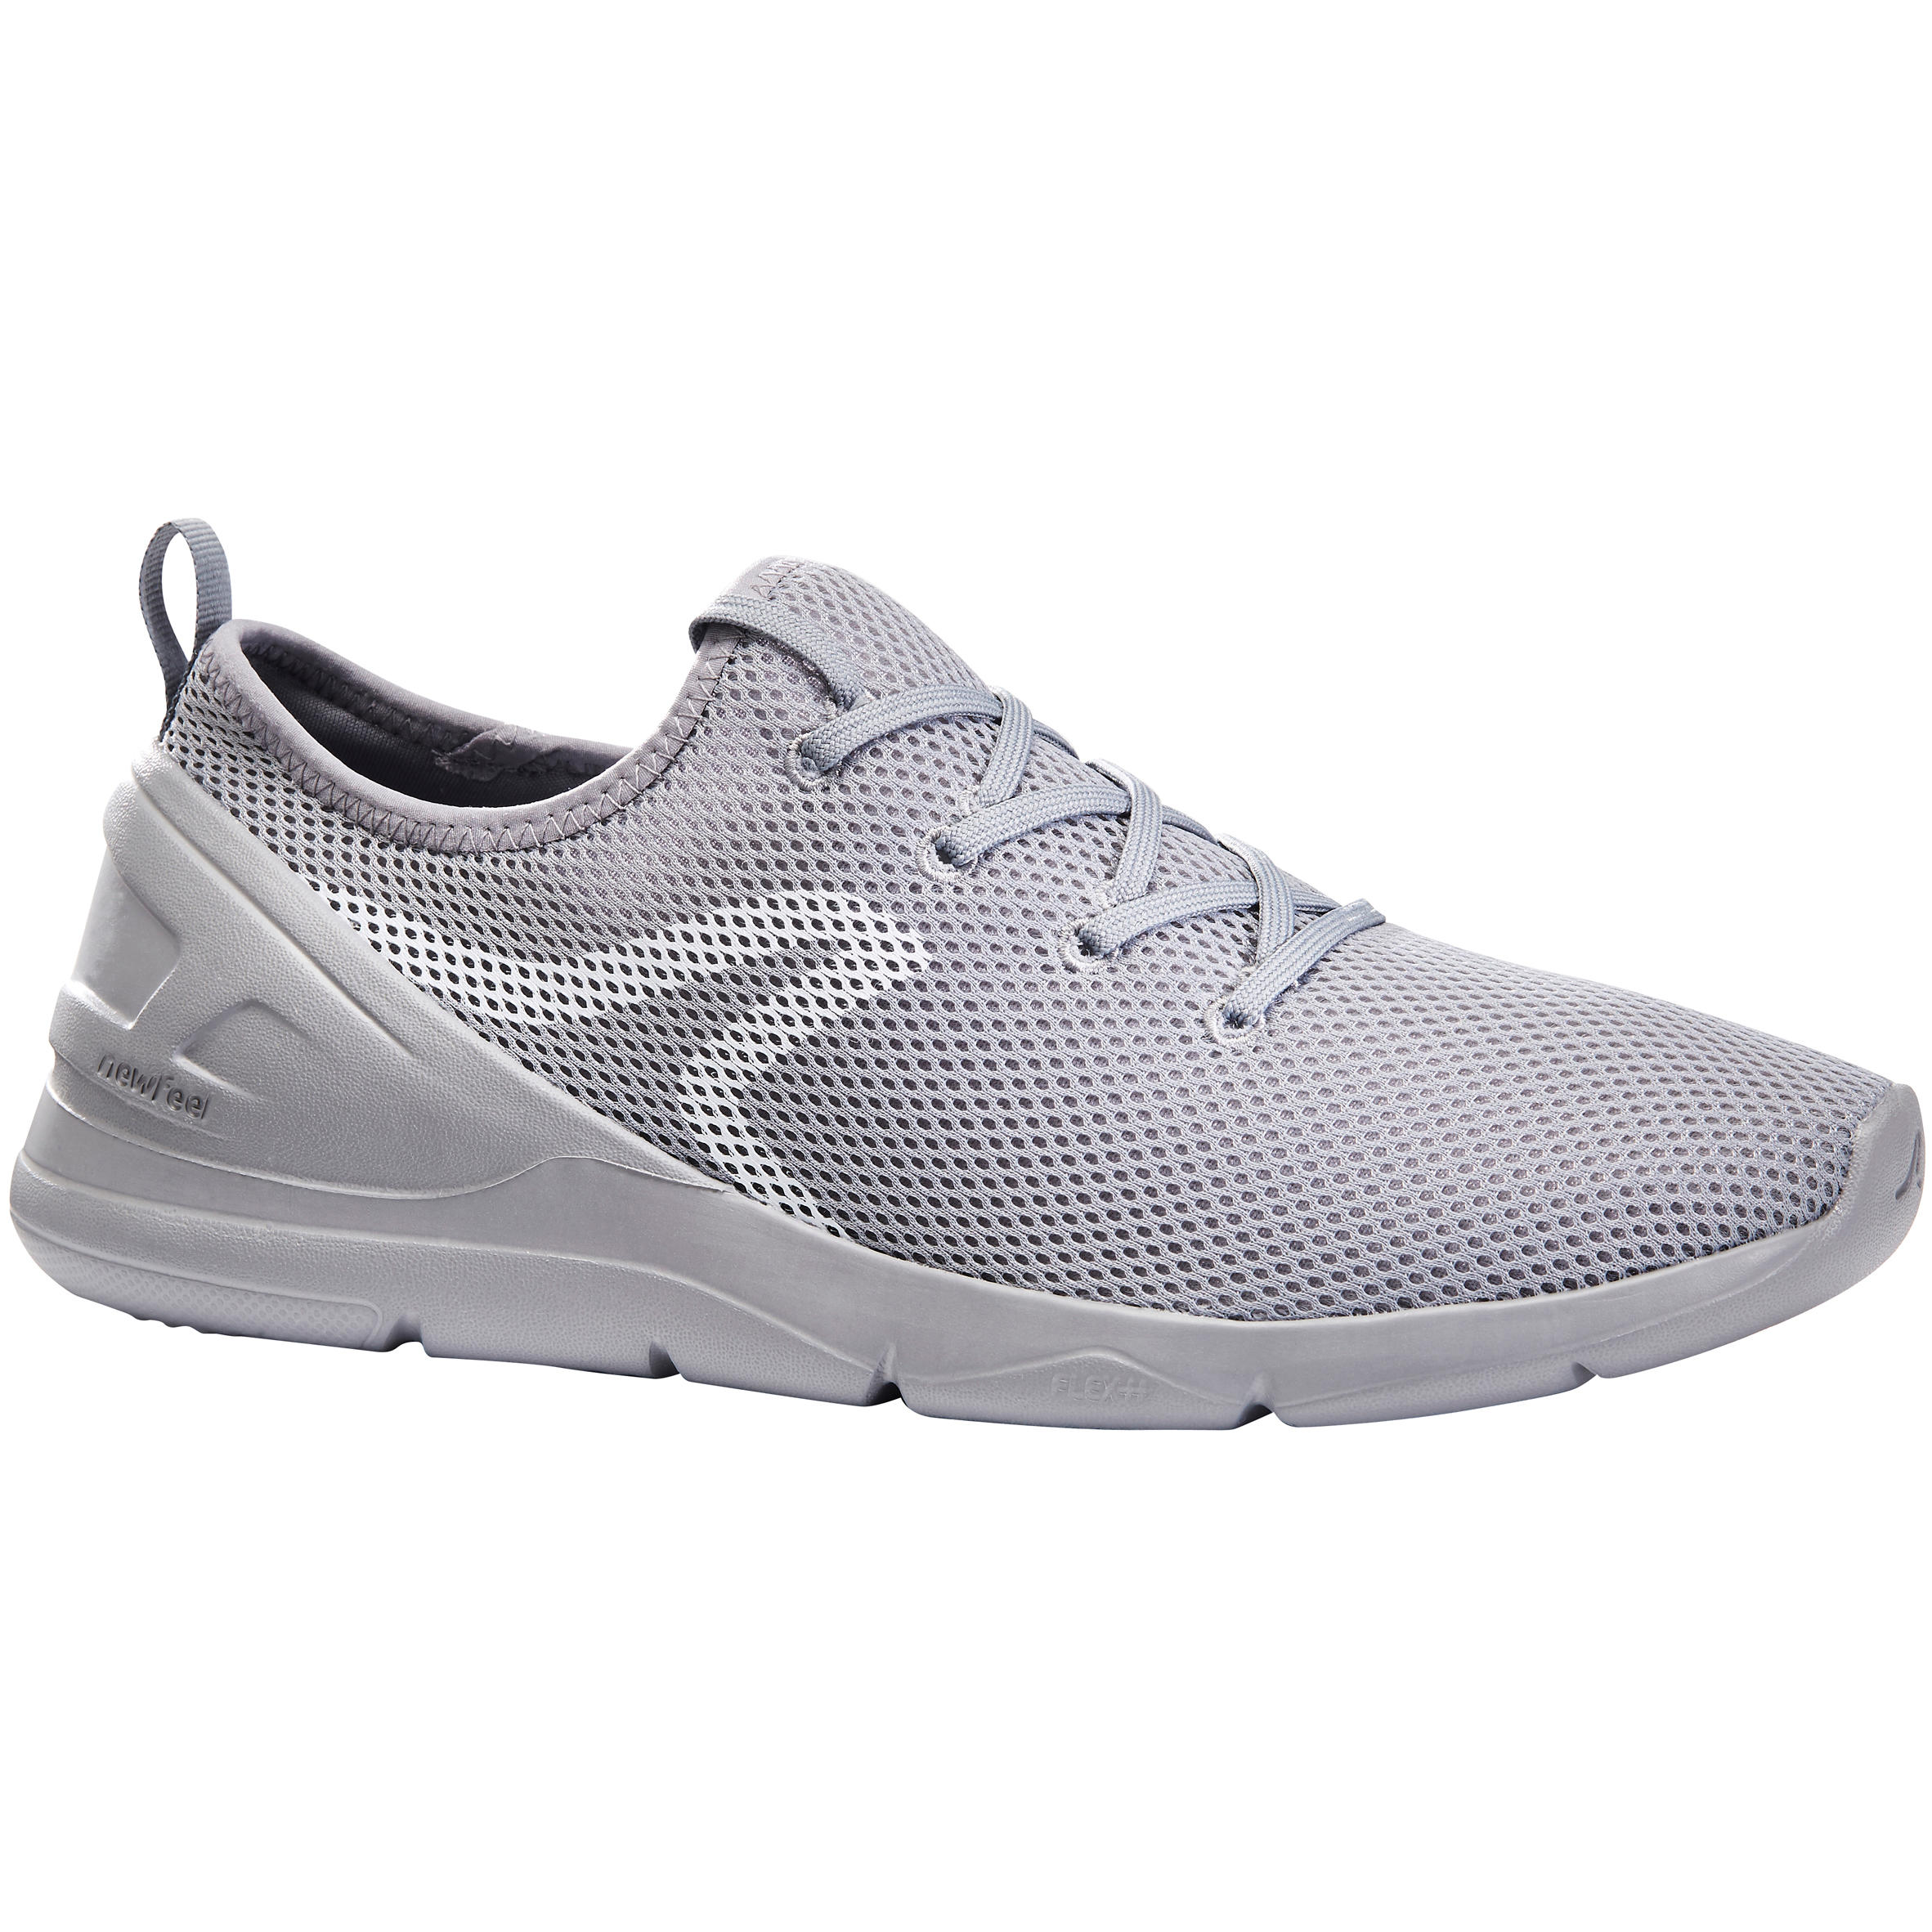 Chaussures marche sportive homme pw 100 gris newfeel